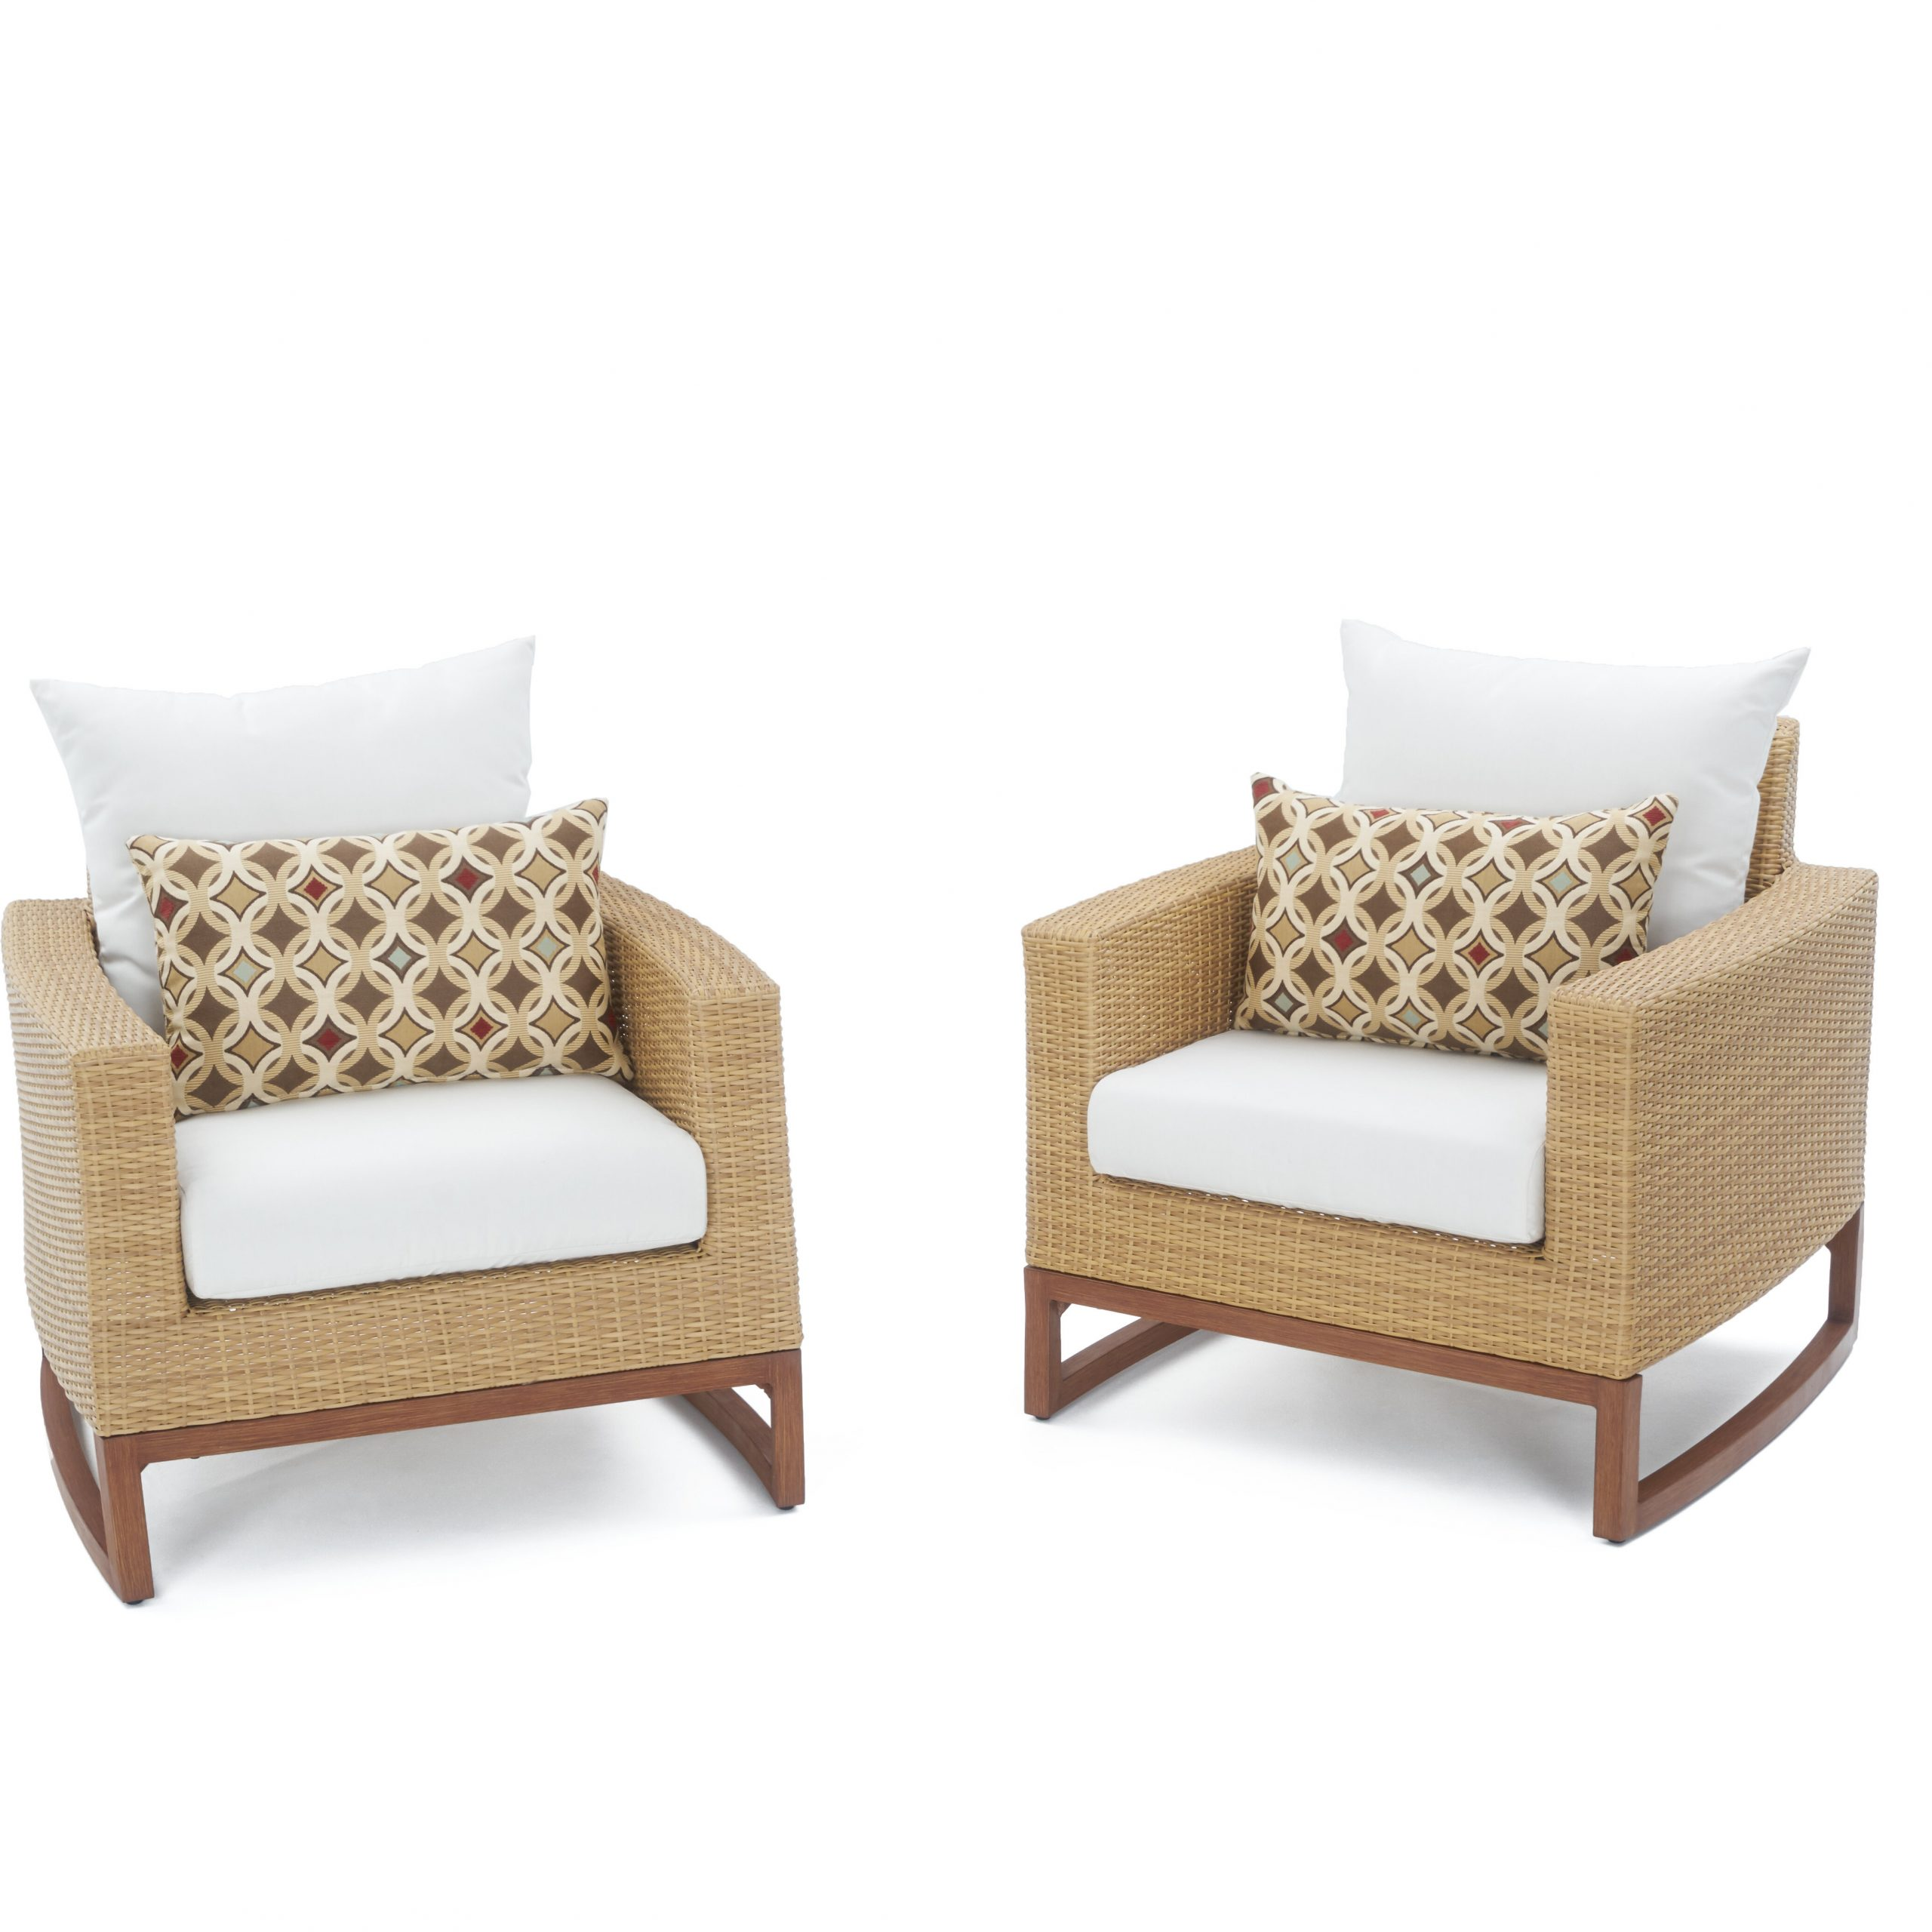 Addison Patio Chair With Sunbrella Cushions For Most Current Fannin Patio Sofas With Cushions (View 17 of 25)